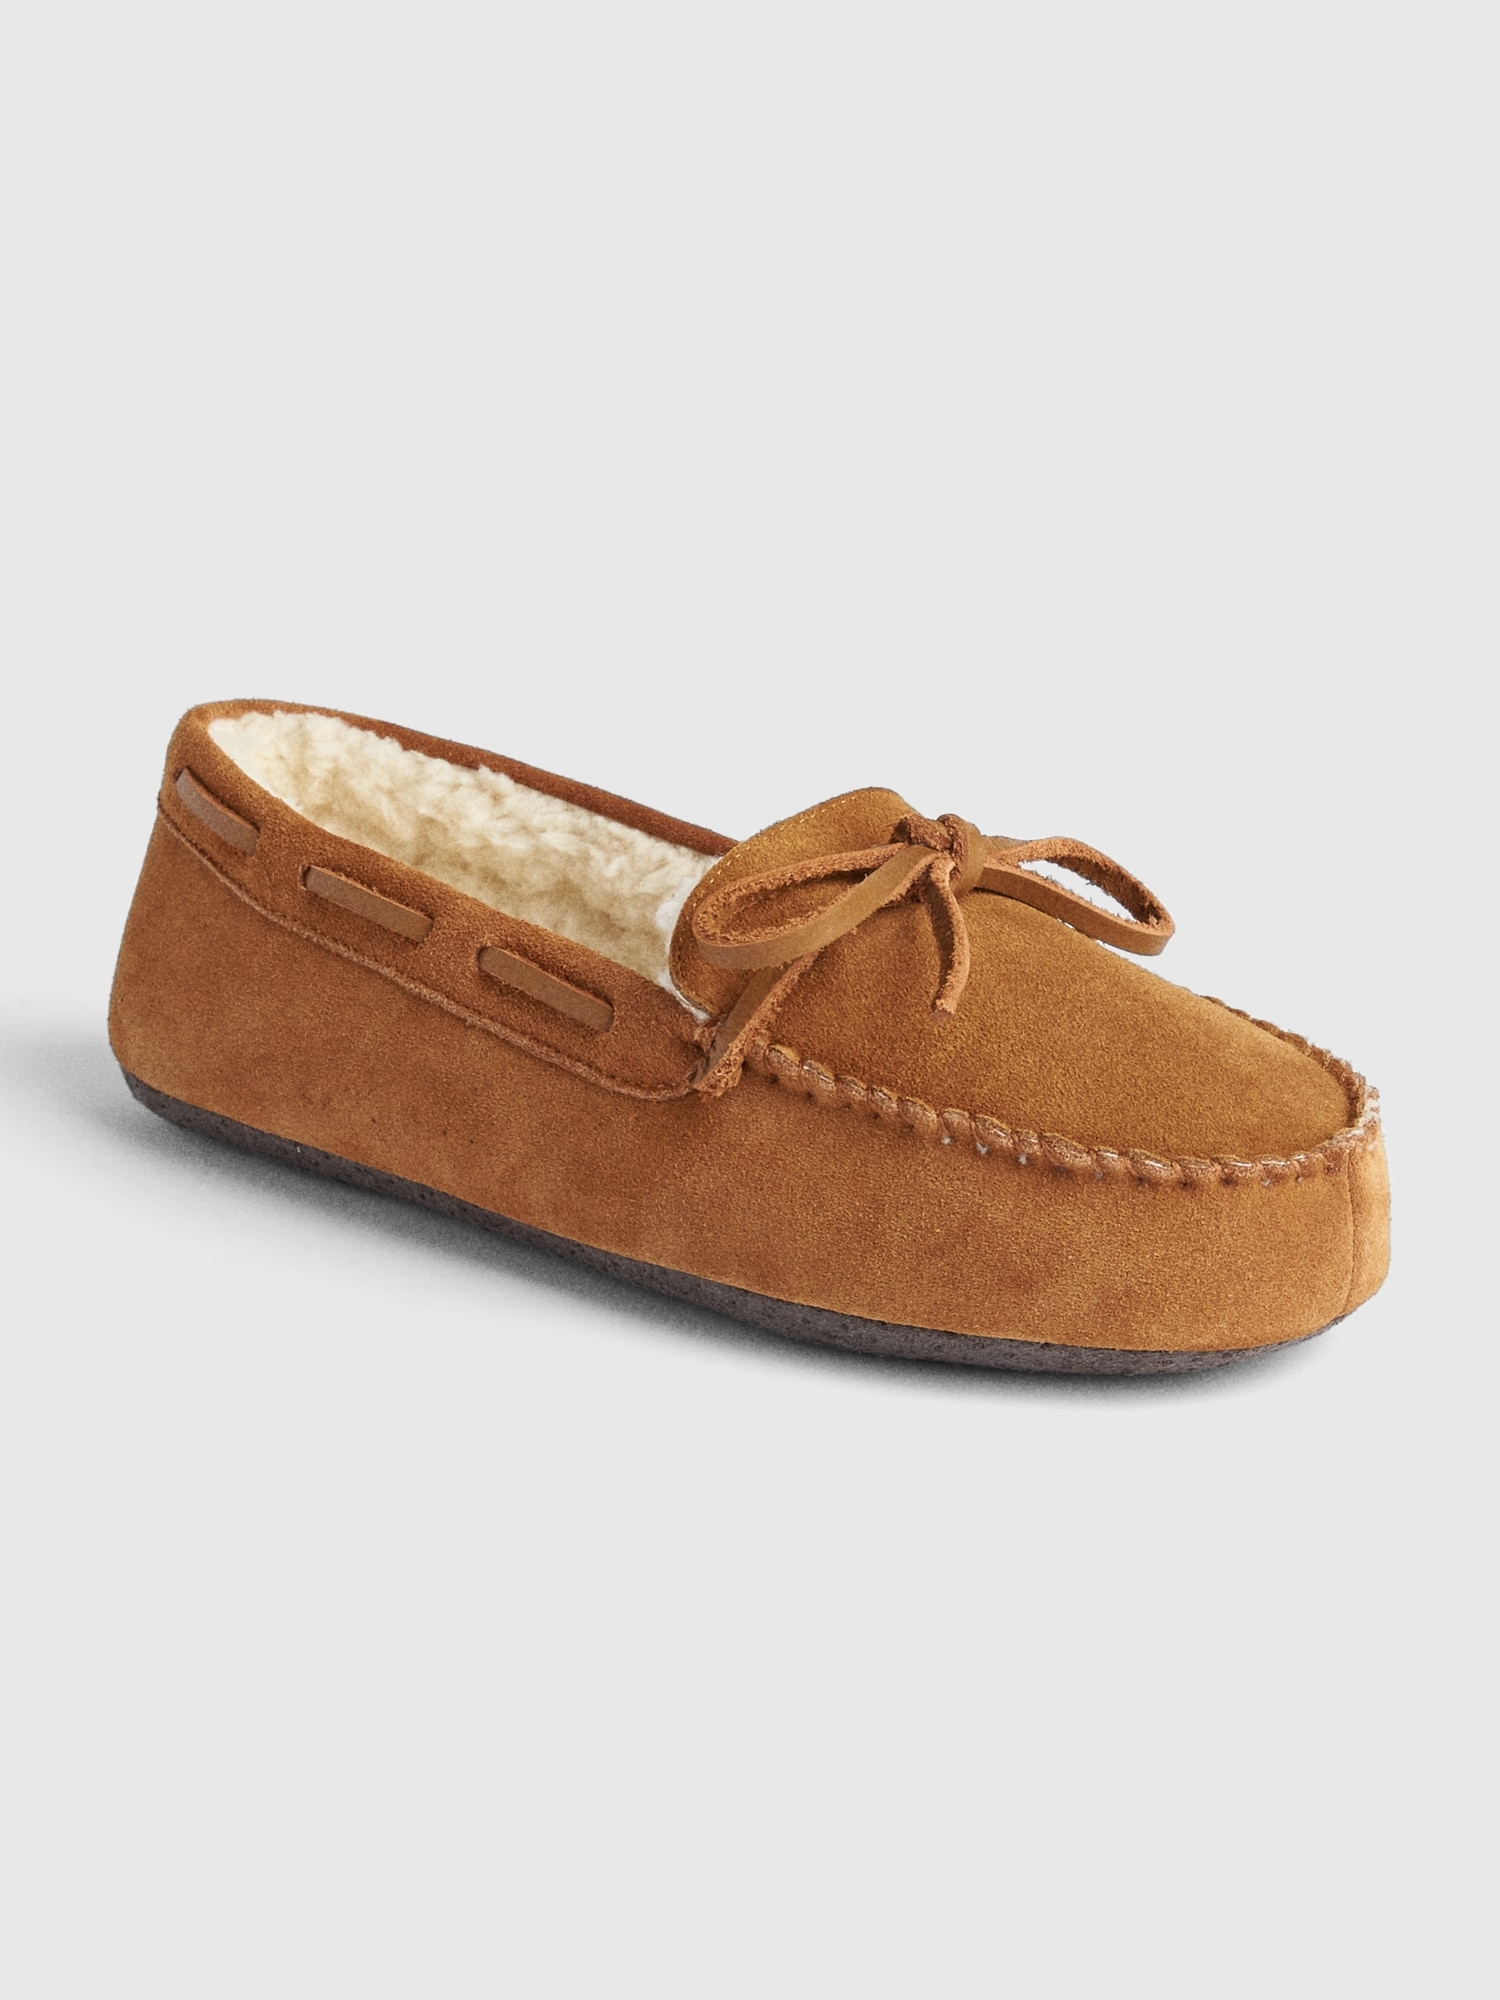 Suede Moccasin Slippers Gap